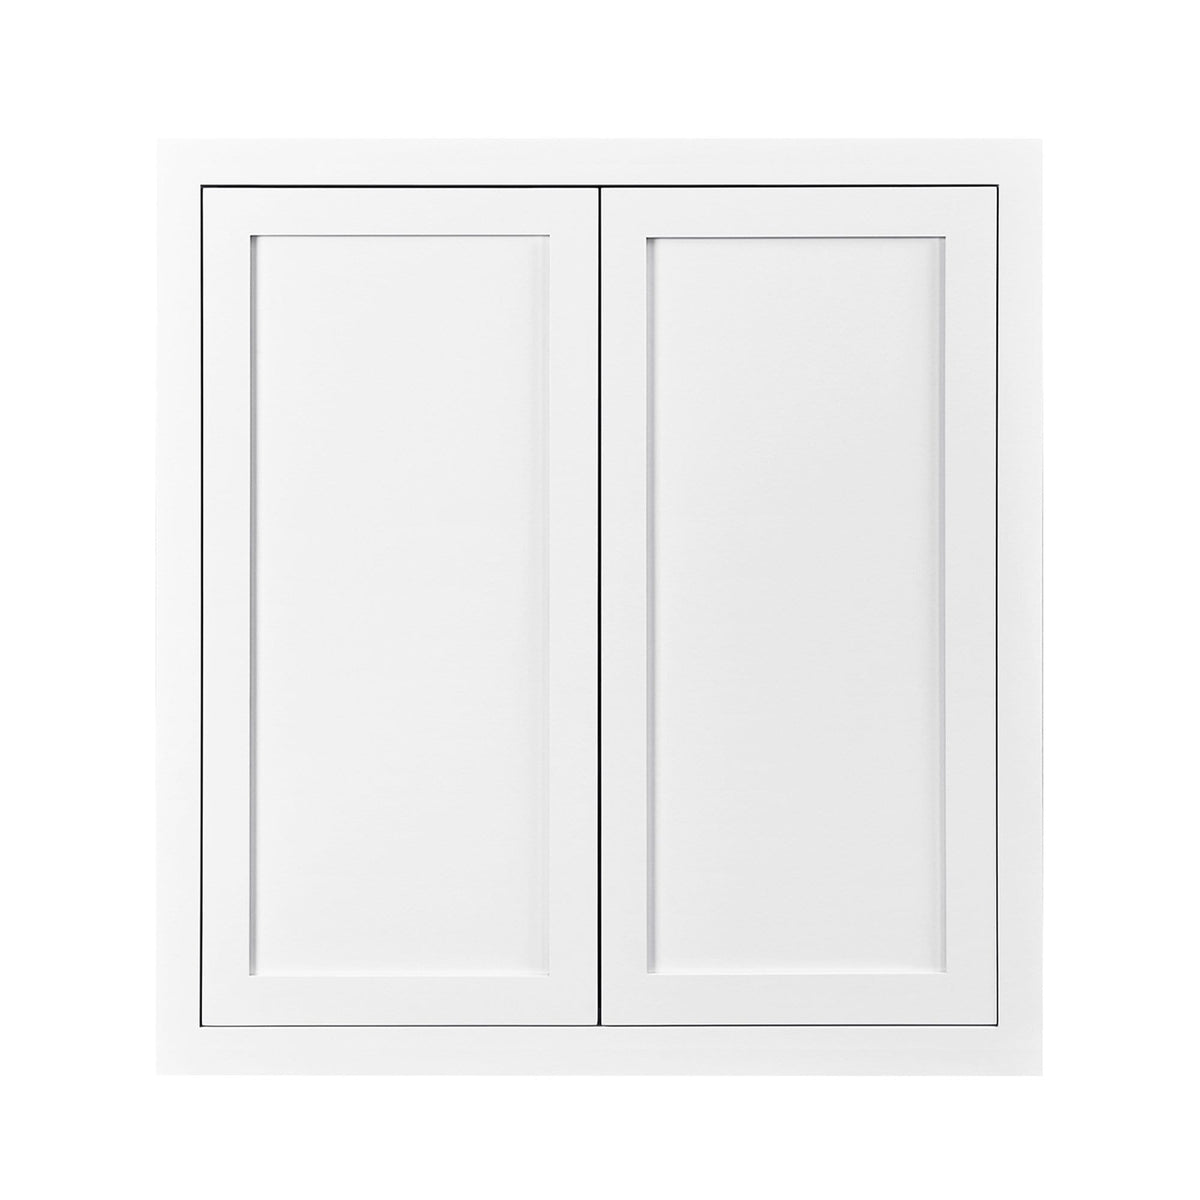 "39"" Tall Wall Cabinet 39"" Tall Snow White Inset Shaker Wall Cabinet - Double Door 24"", 27"", 30"", 33"" & 36"" Wide D1W363914 Inset Kitchen Cabinets"